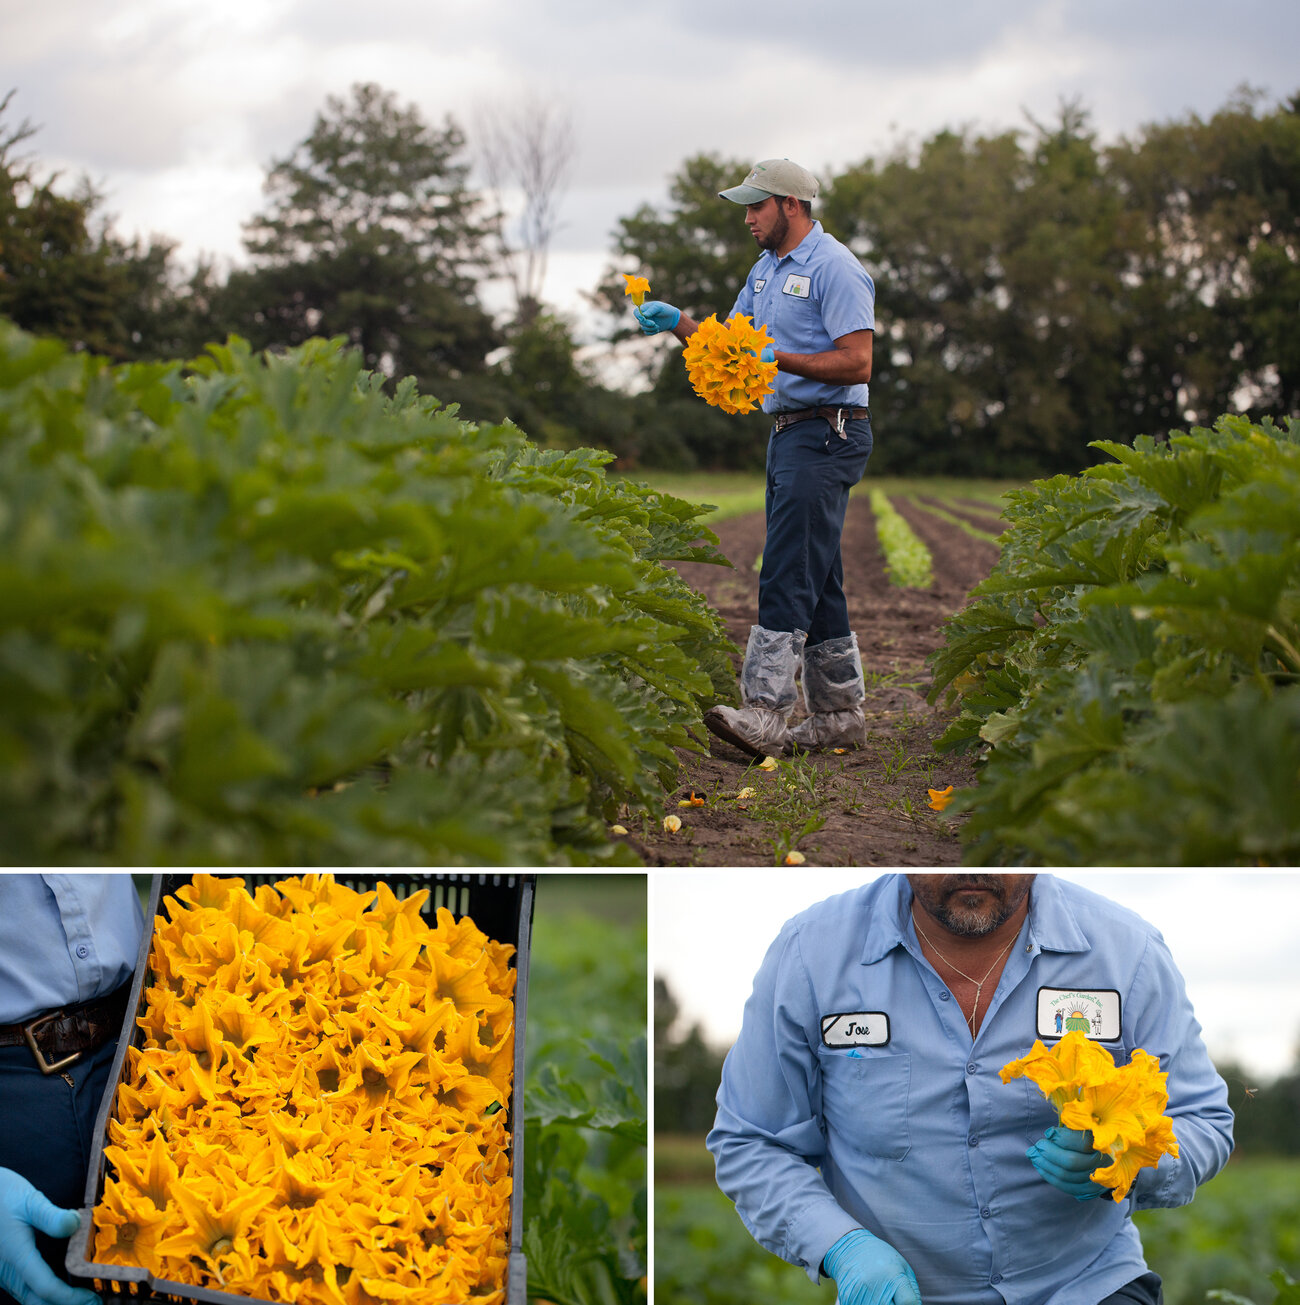 Workers at Chef's Garden pick squash blossoms only at their peak, which is a narrow hour-and-a-half window in the early morning. (Ryan Kellman/NPR)